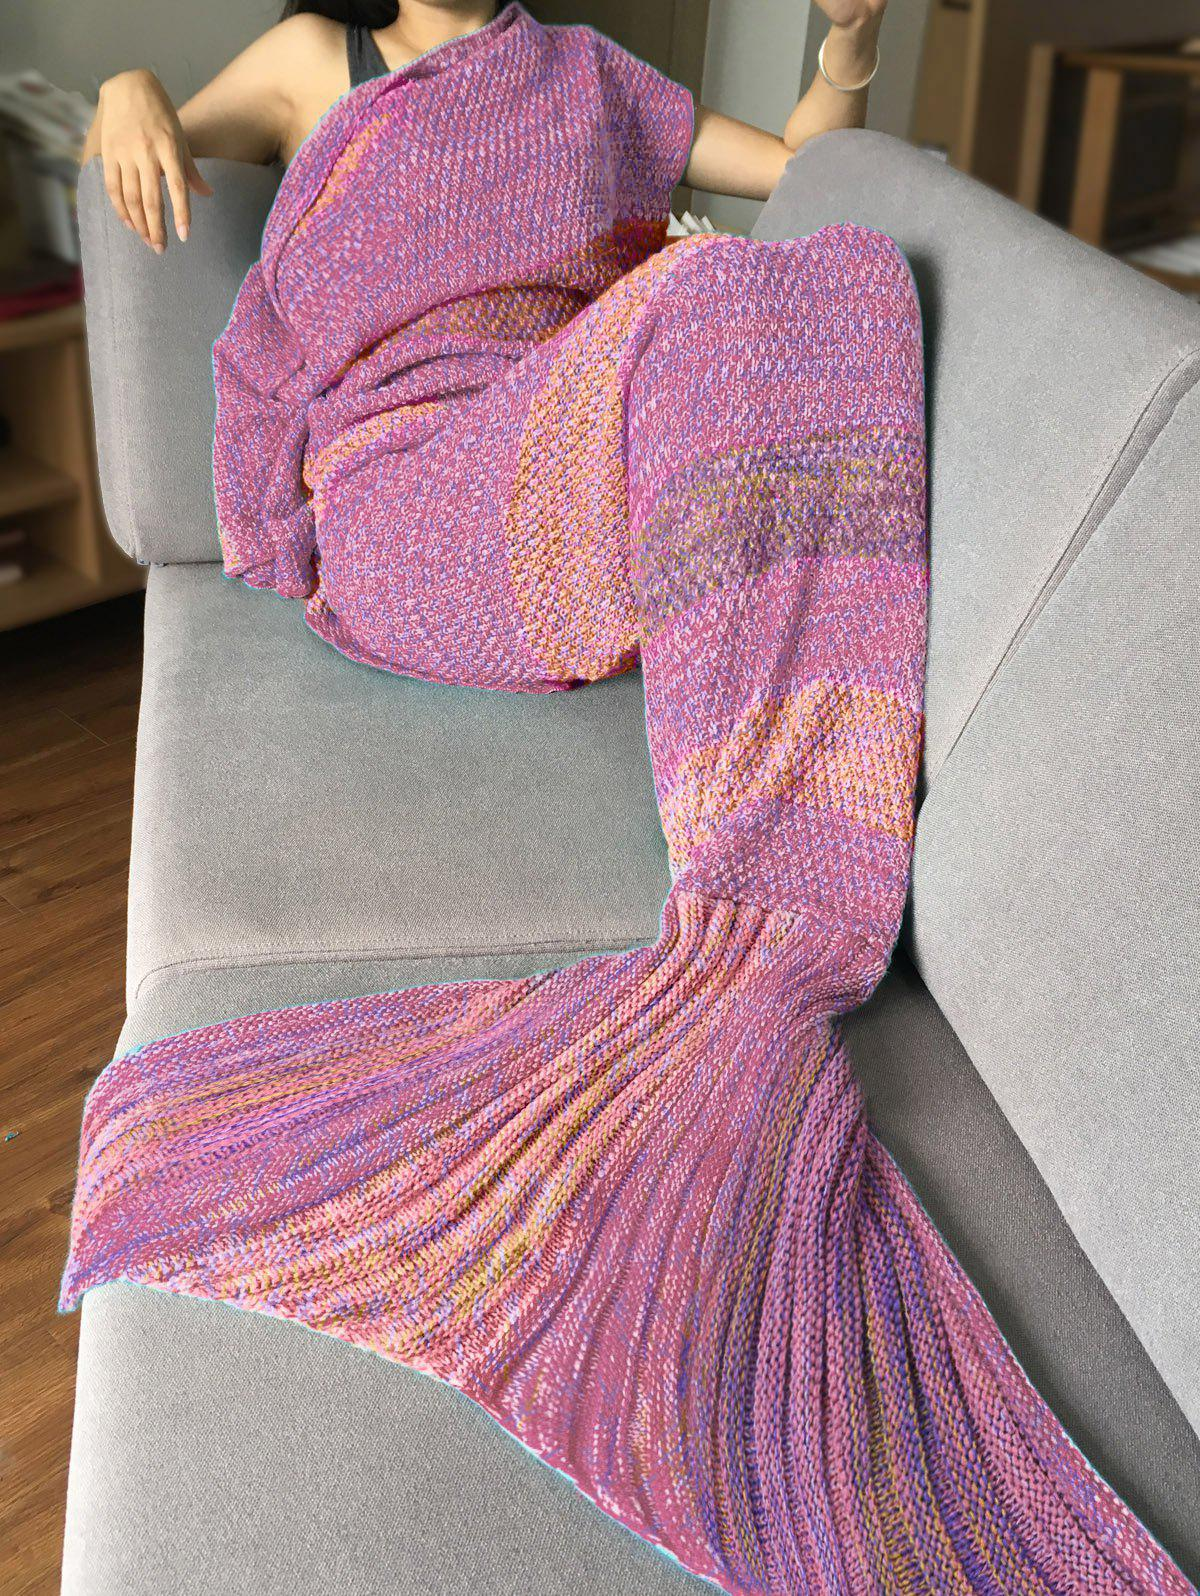 Crochet Stripe Pattern Mermaid Tail Shape Bedding Blanket - PINK